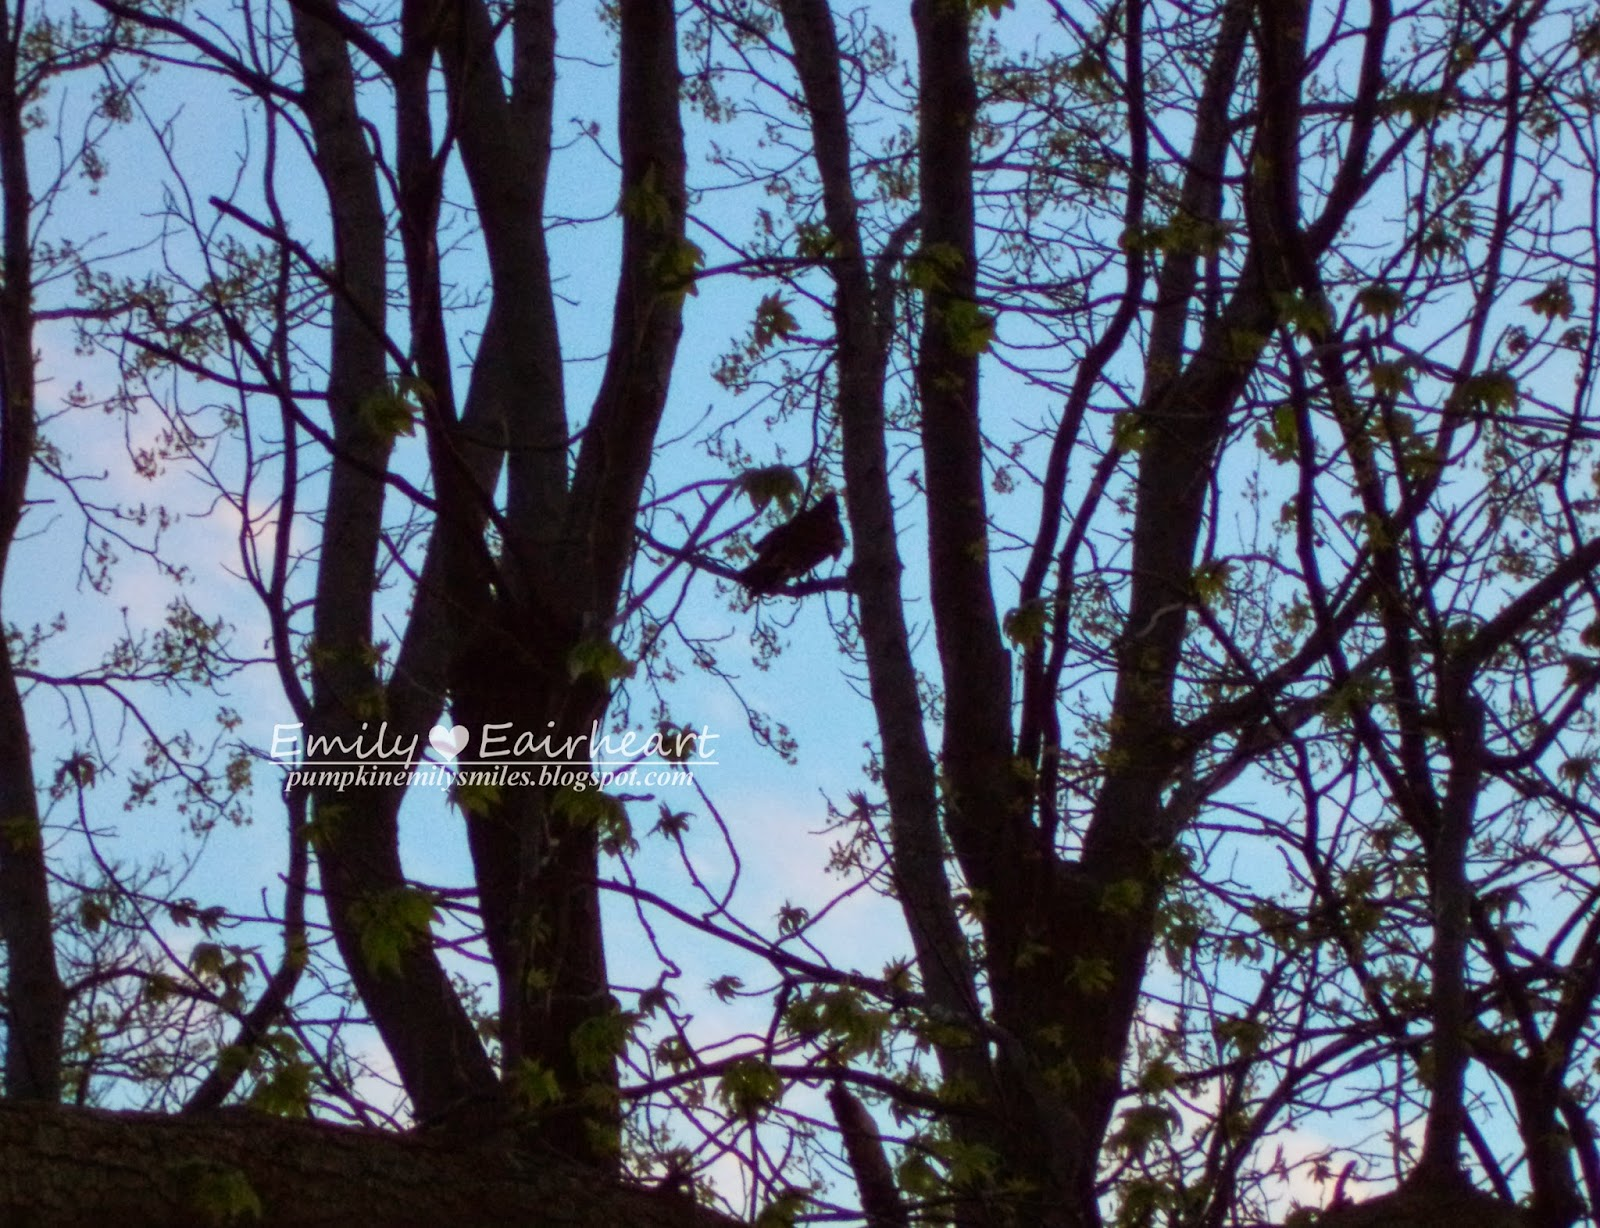 A buzzard sitting in the trees